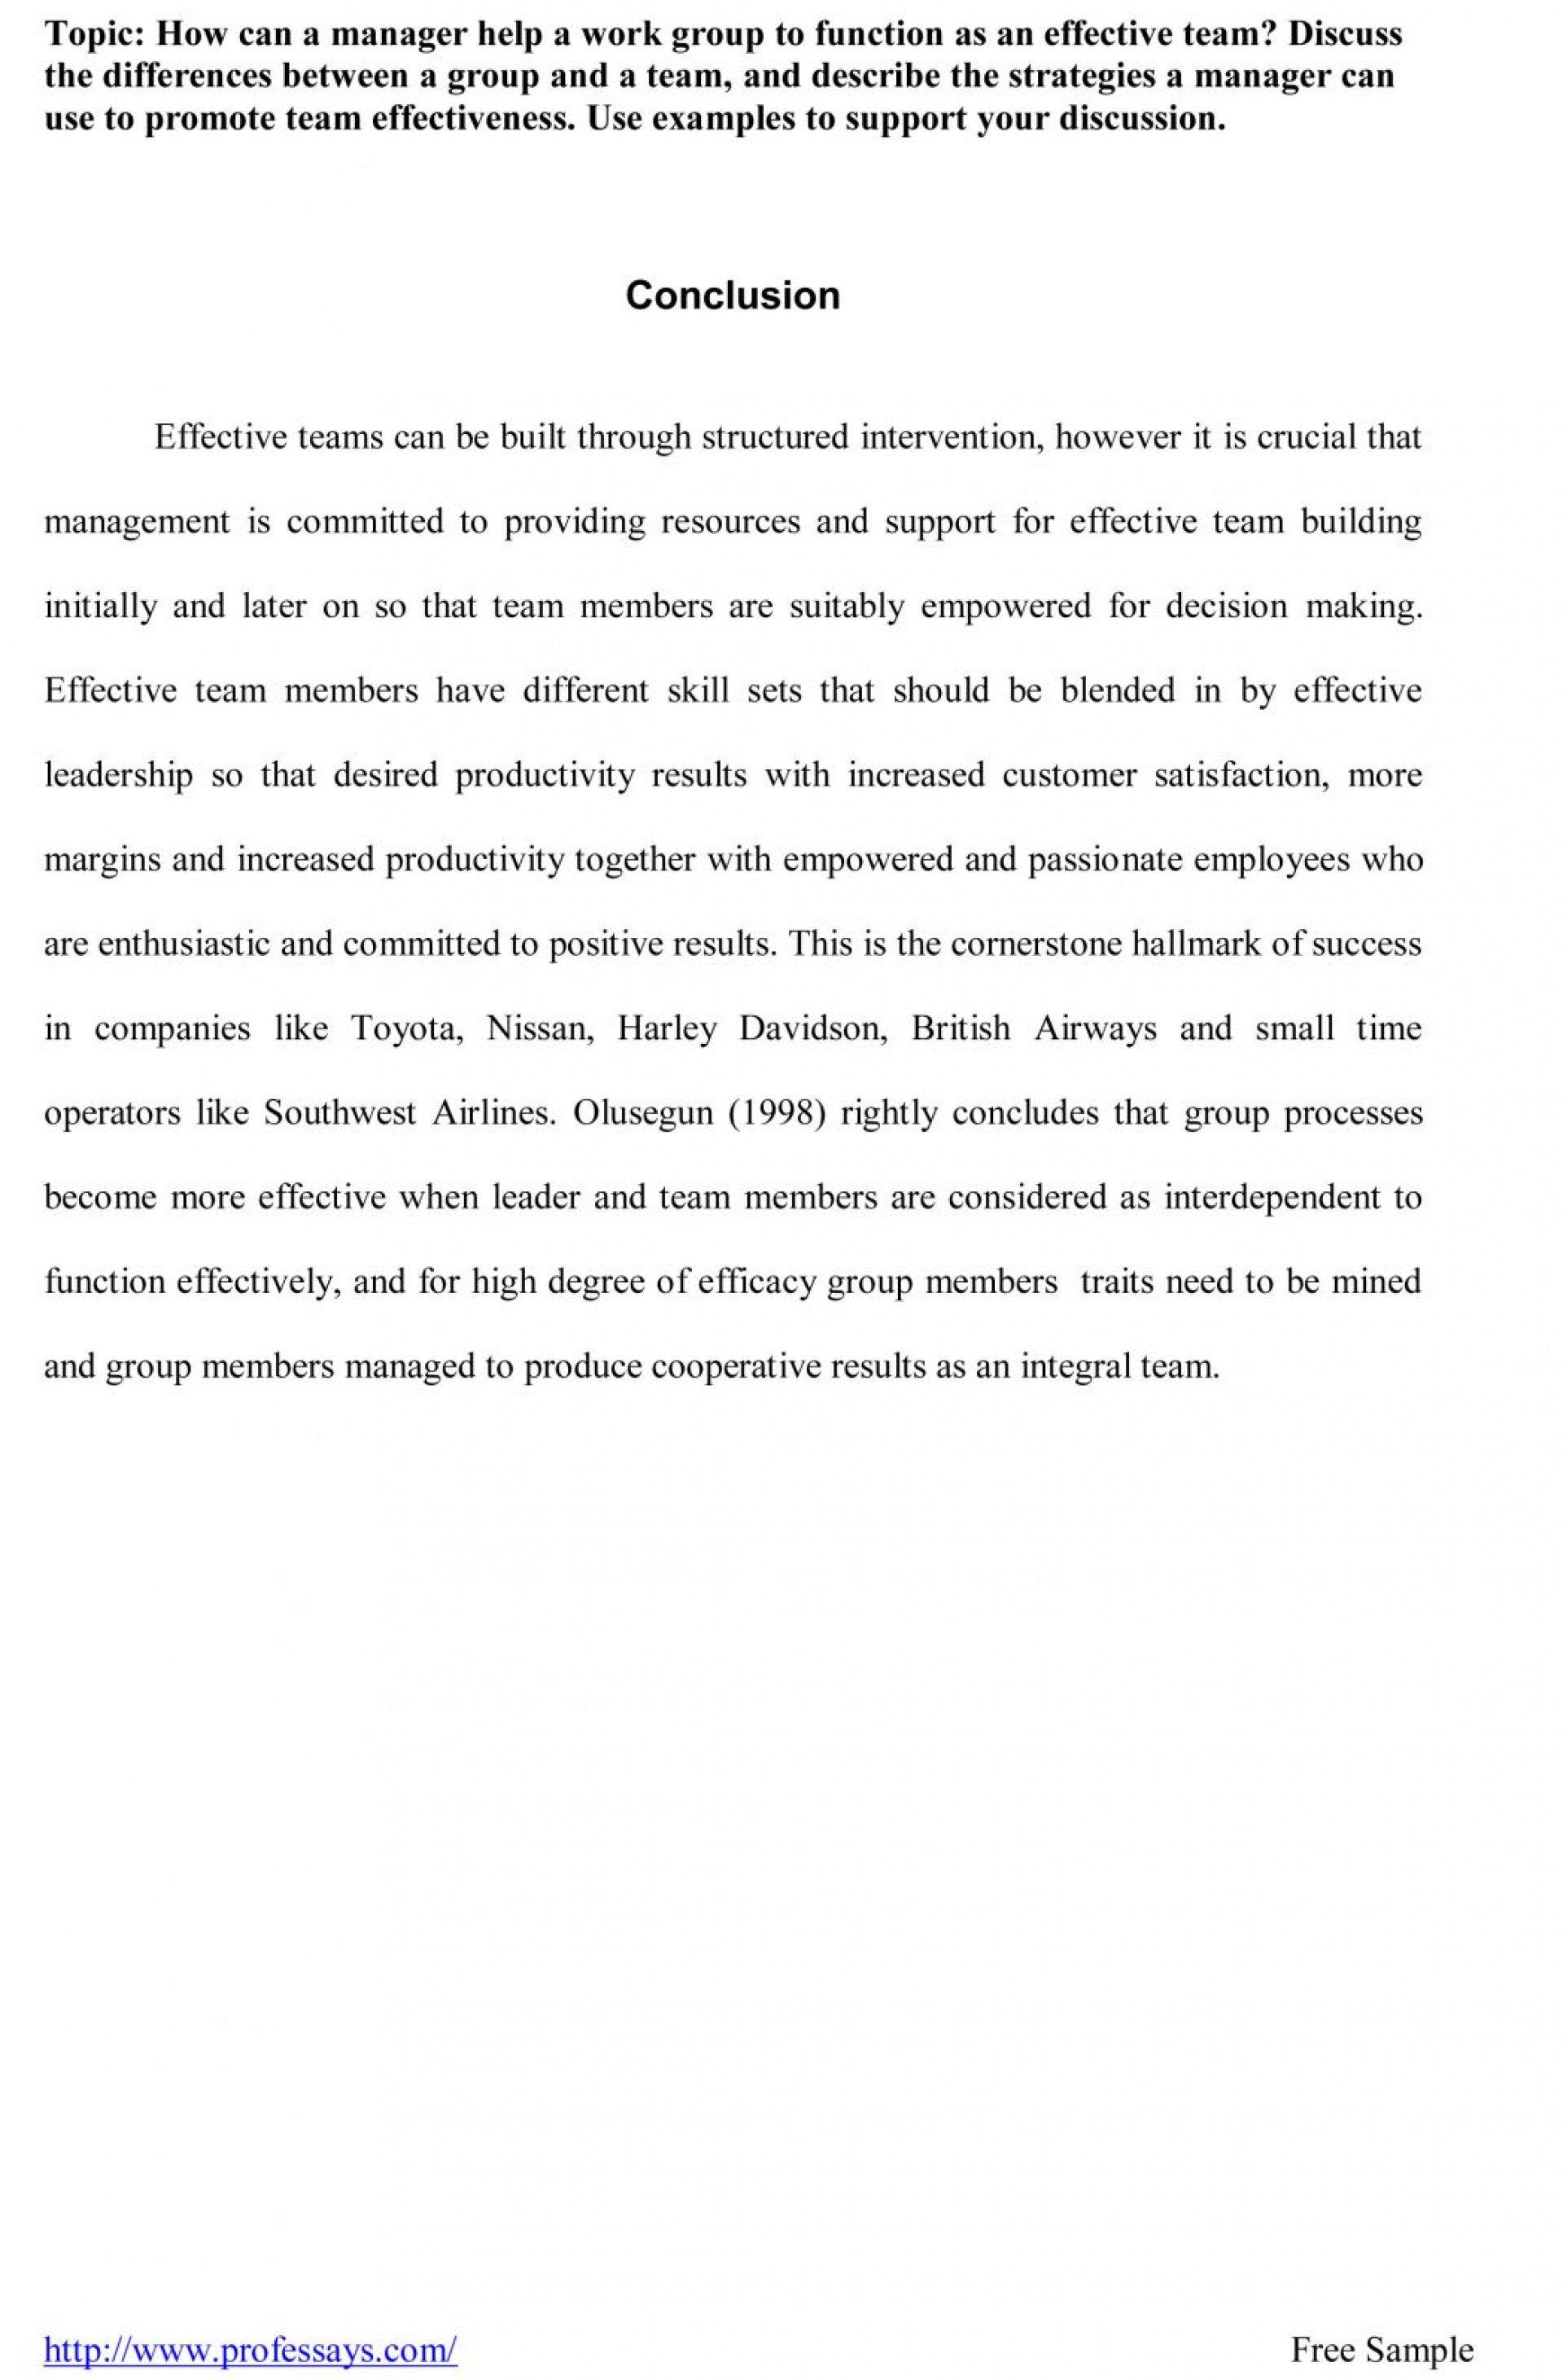 001 Thesis Statements For Persuasive Essays Essay Conclusion Samples Paragraph Death Penalty Research Paper Sample 1048x1596 Awful Argumentative Titles Outline 1920